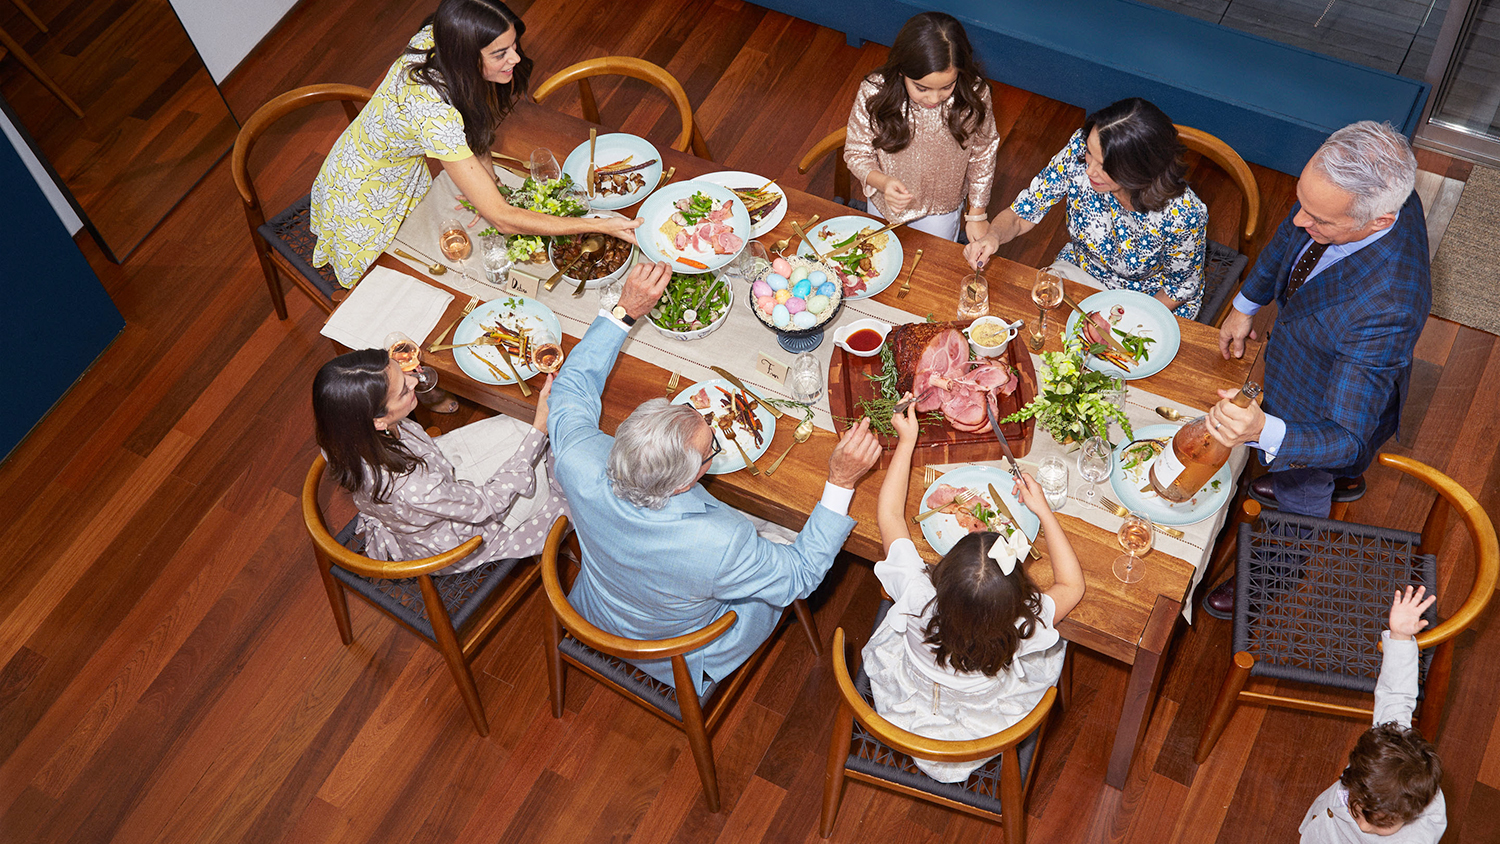 Geoffrey Zakarian's family eating at table